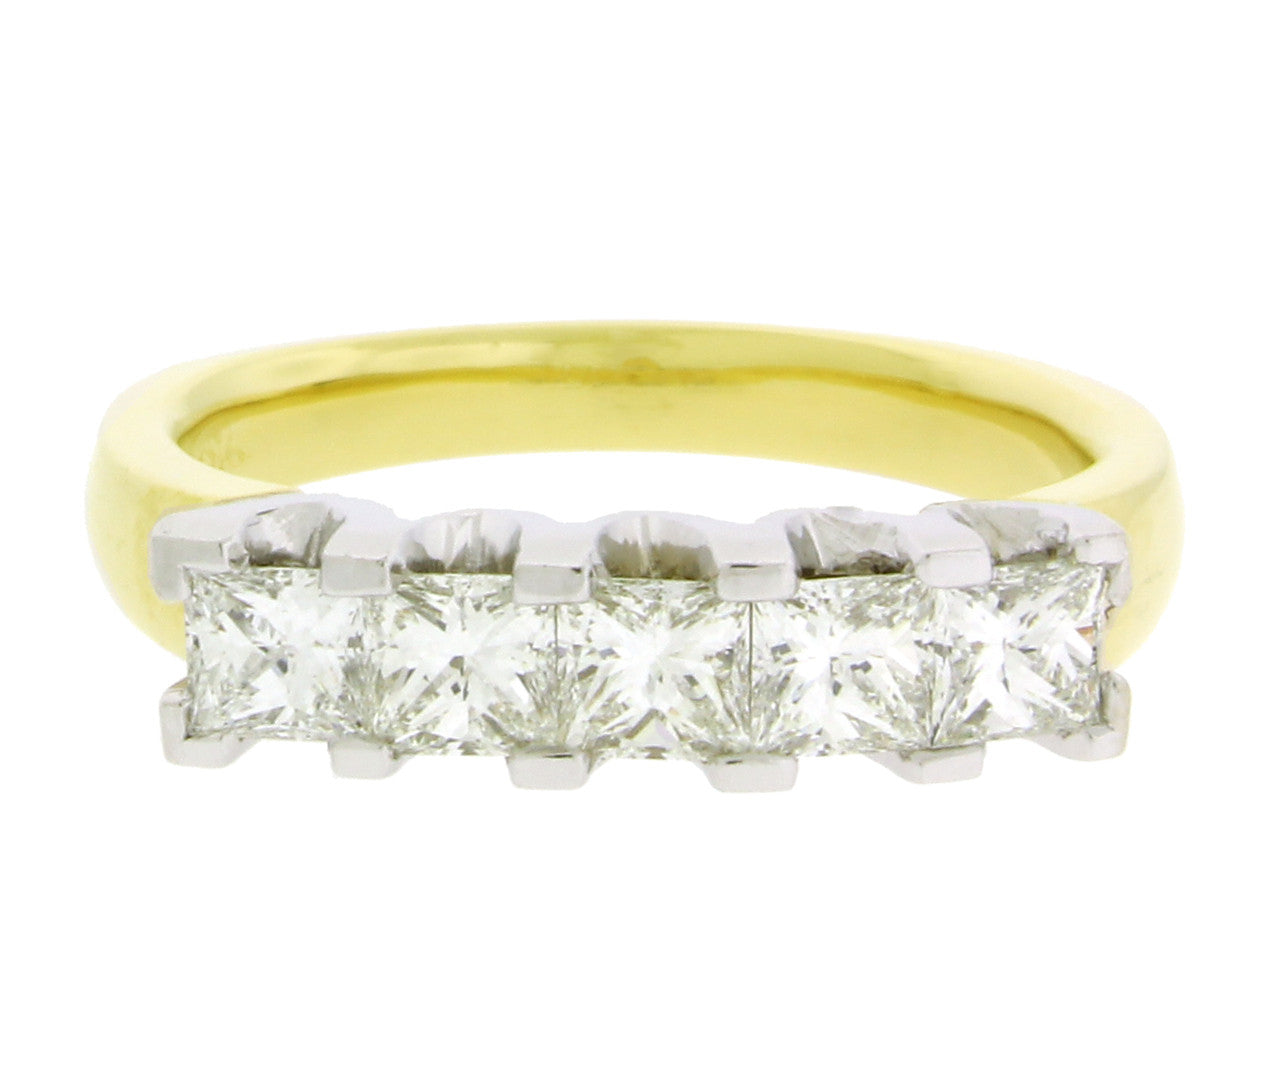 47d410731 5_Stone_princess_cut_wedding_band_in_2_tone_yellow_white_gold_1.20_ct_size_6.5__01405.1445558009.1280.1280.jpeg?v=1455132422